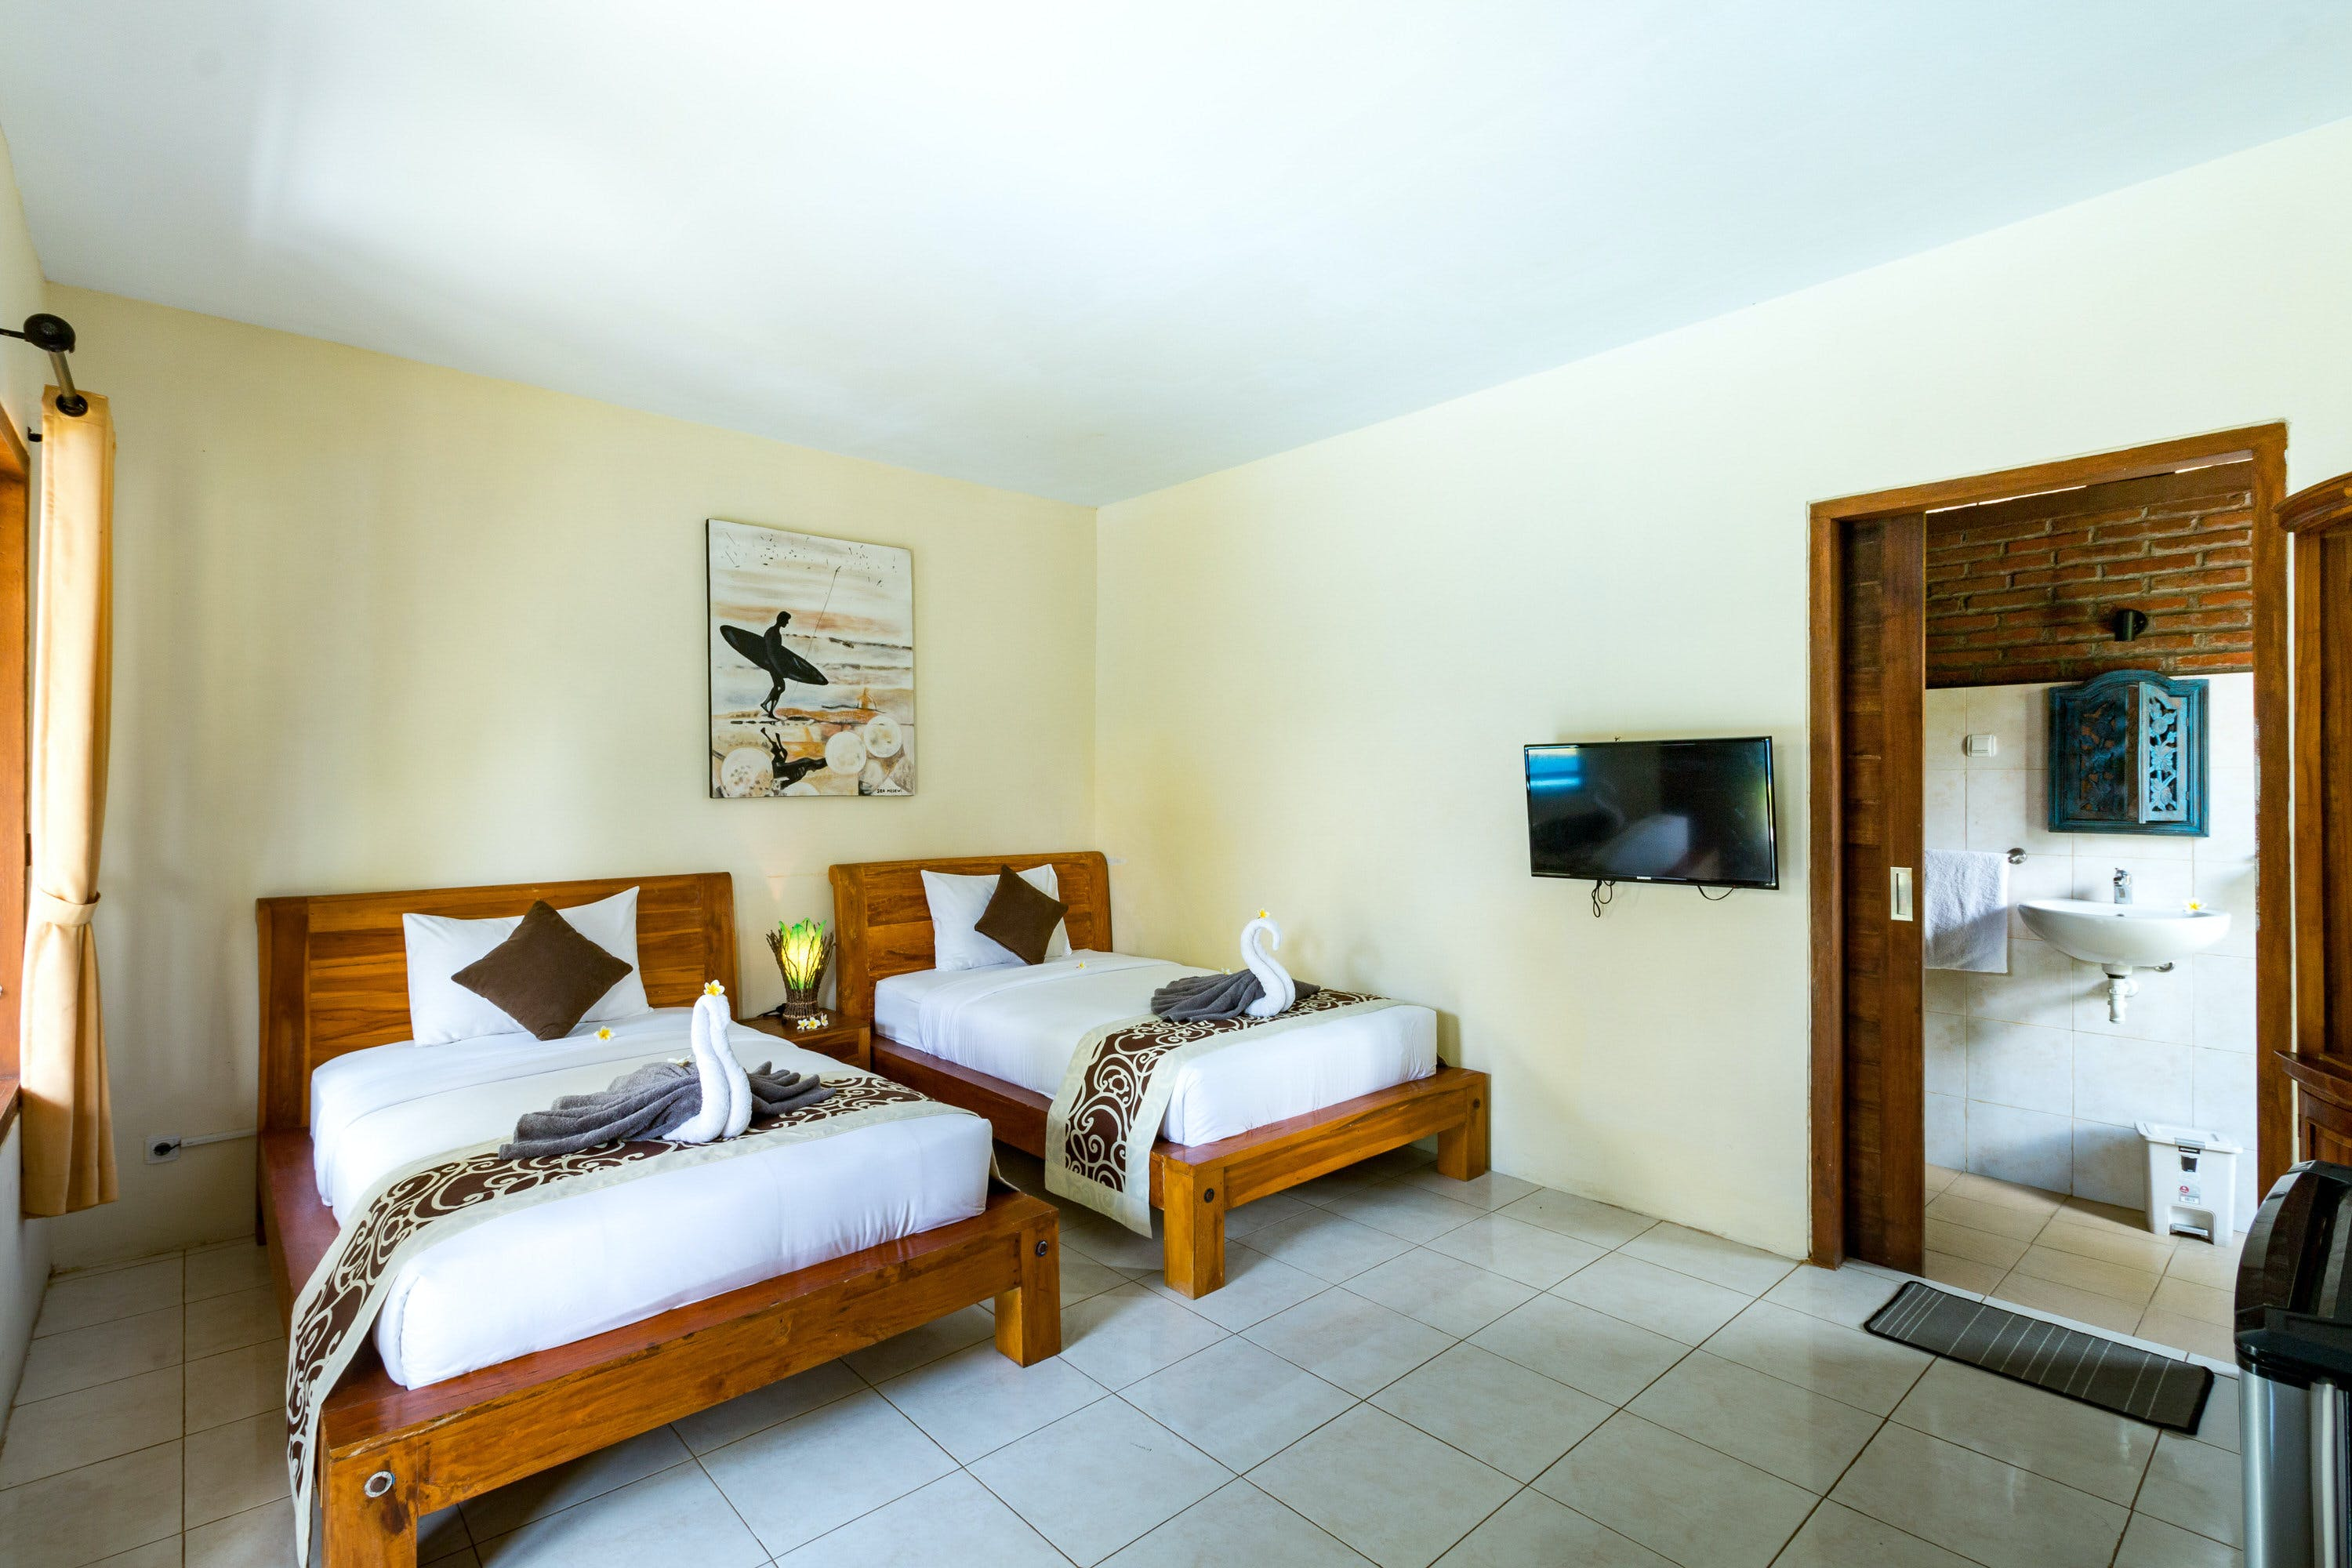 Pool View Twin Room at Sea Medewi Resort, best hotel for surfing, yoga, and enjoy Medewi beach in Negara